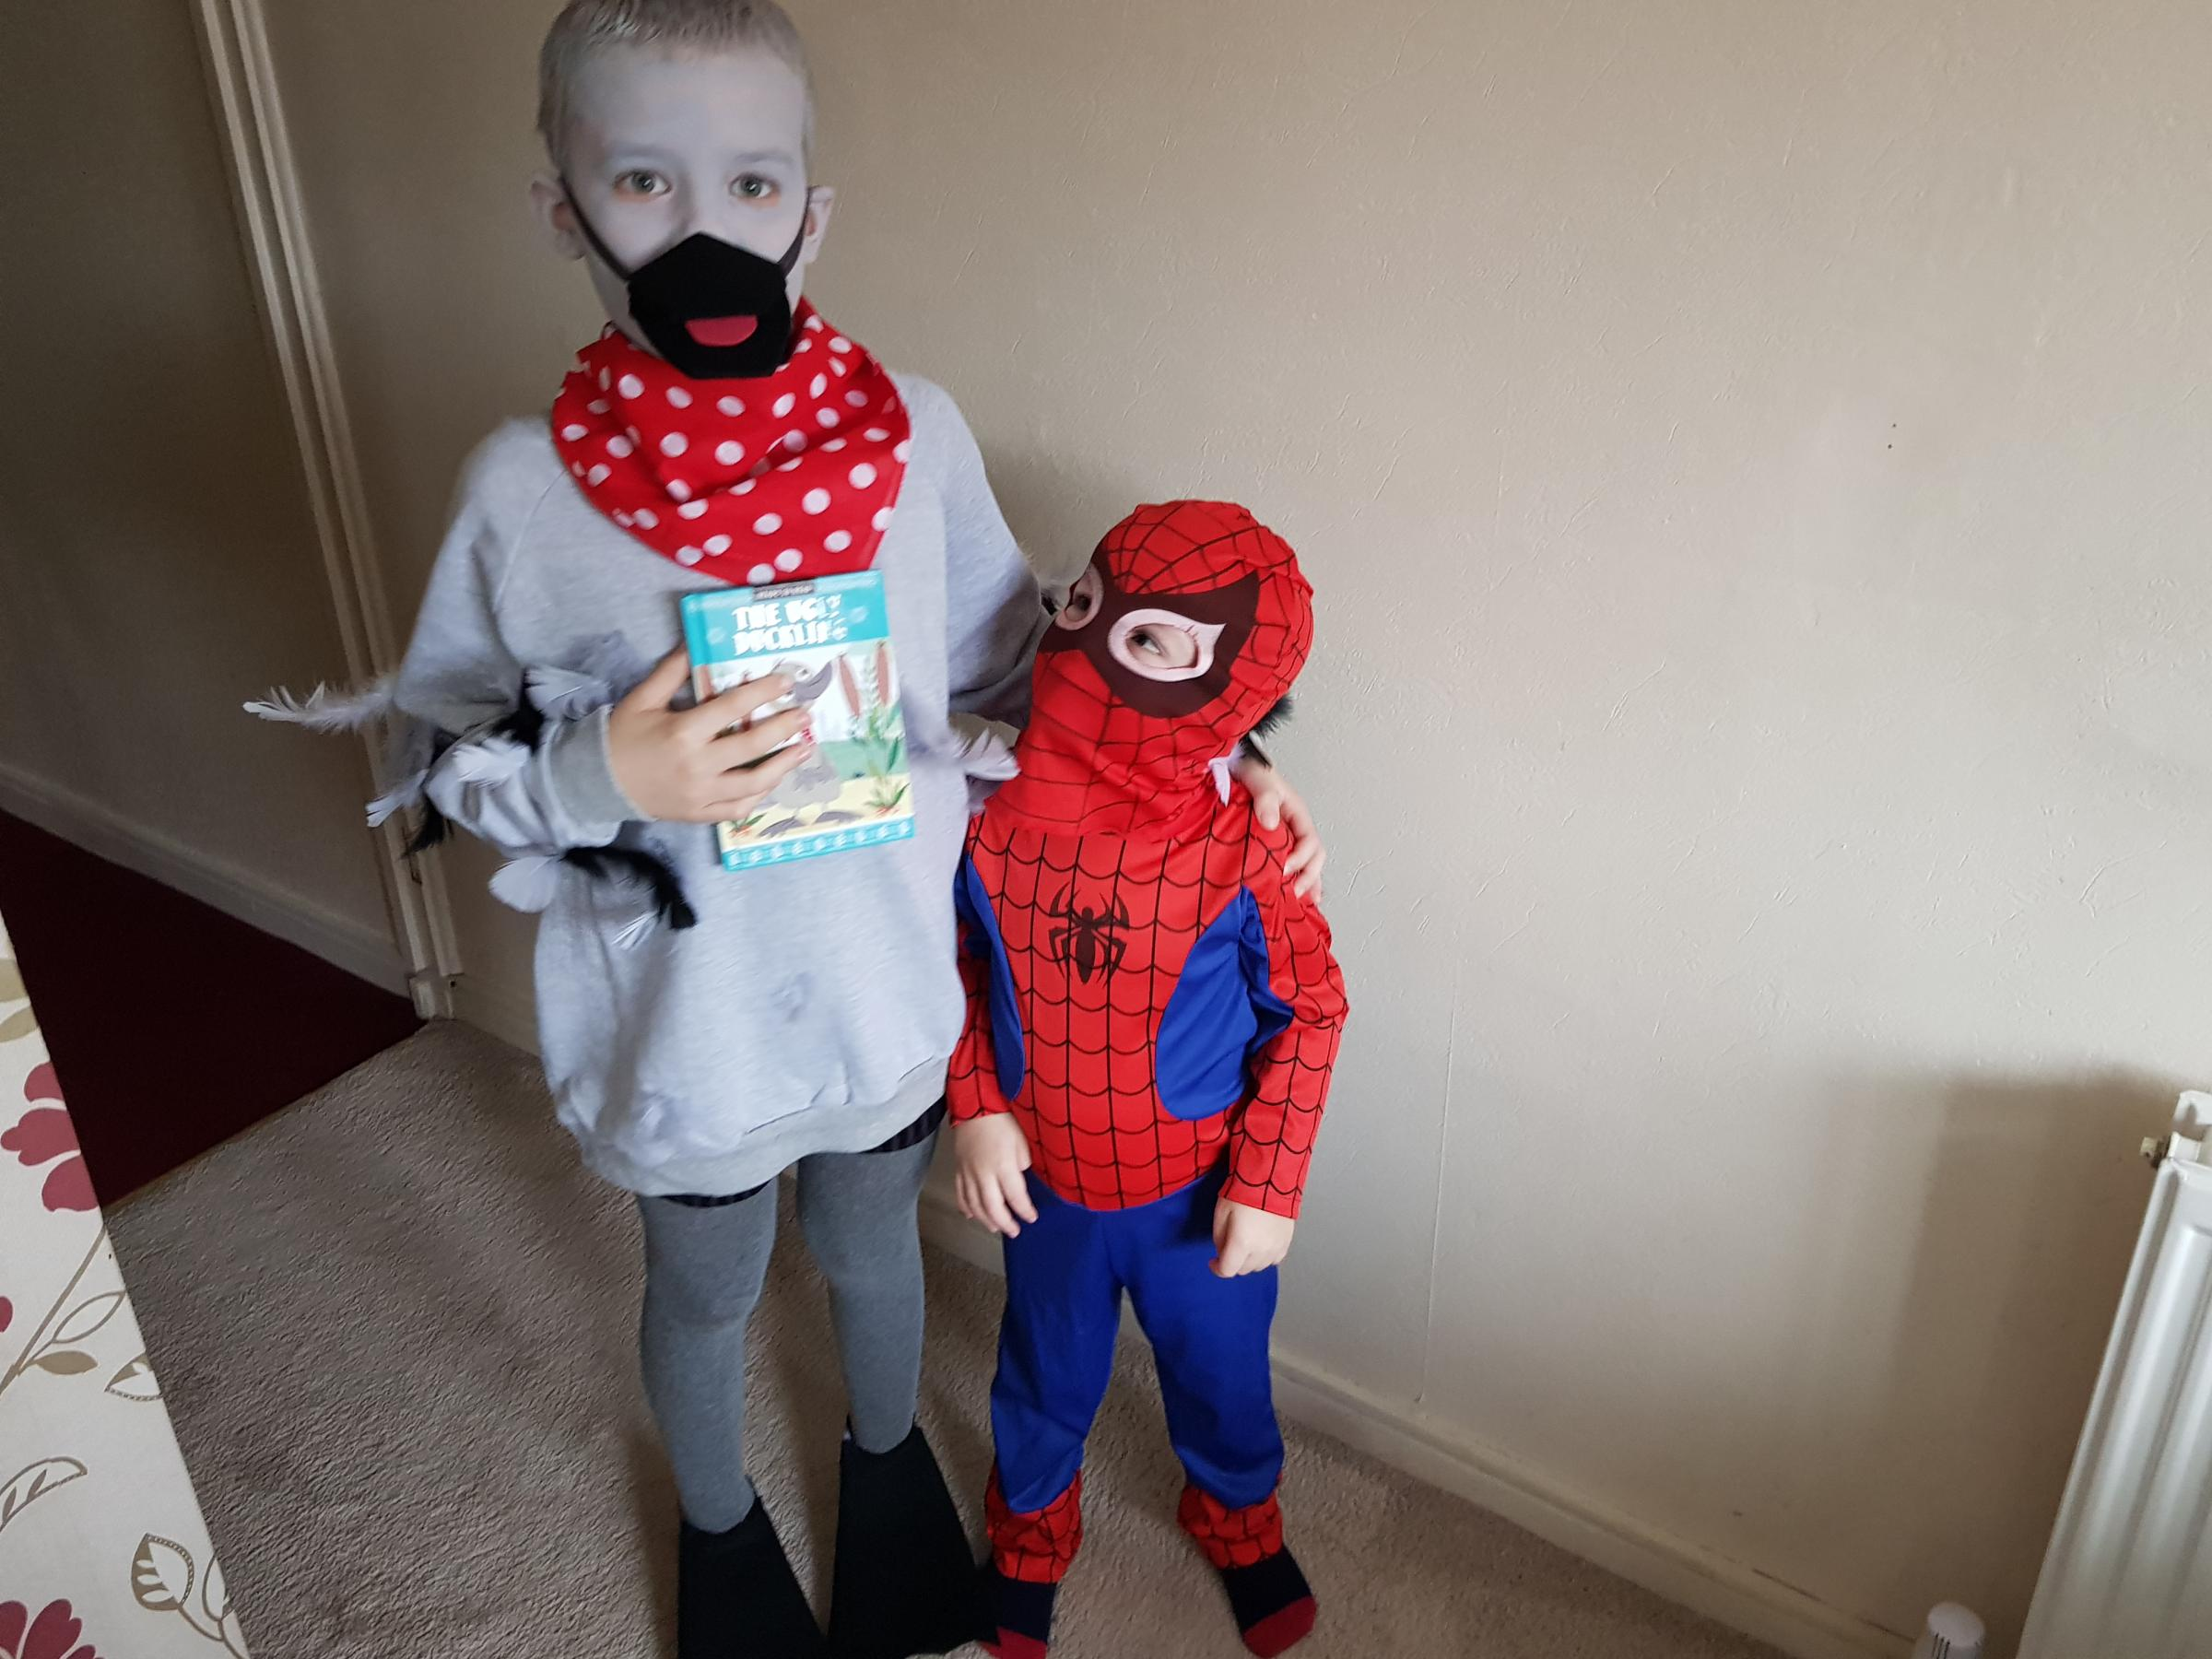 Droitwich Advertiser: The ugly duckling and spiderman